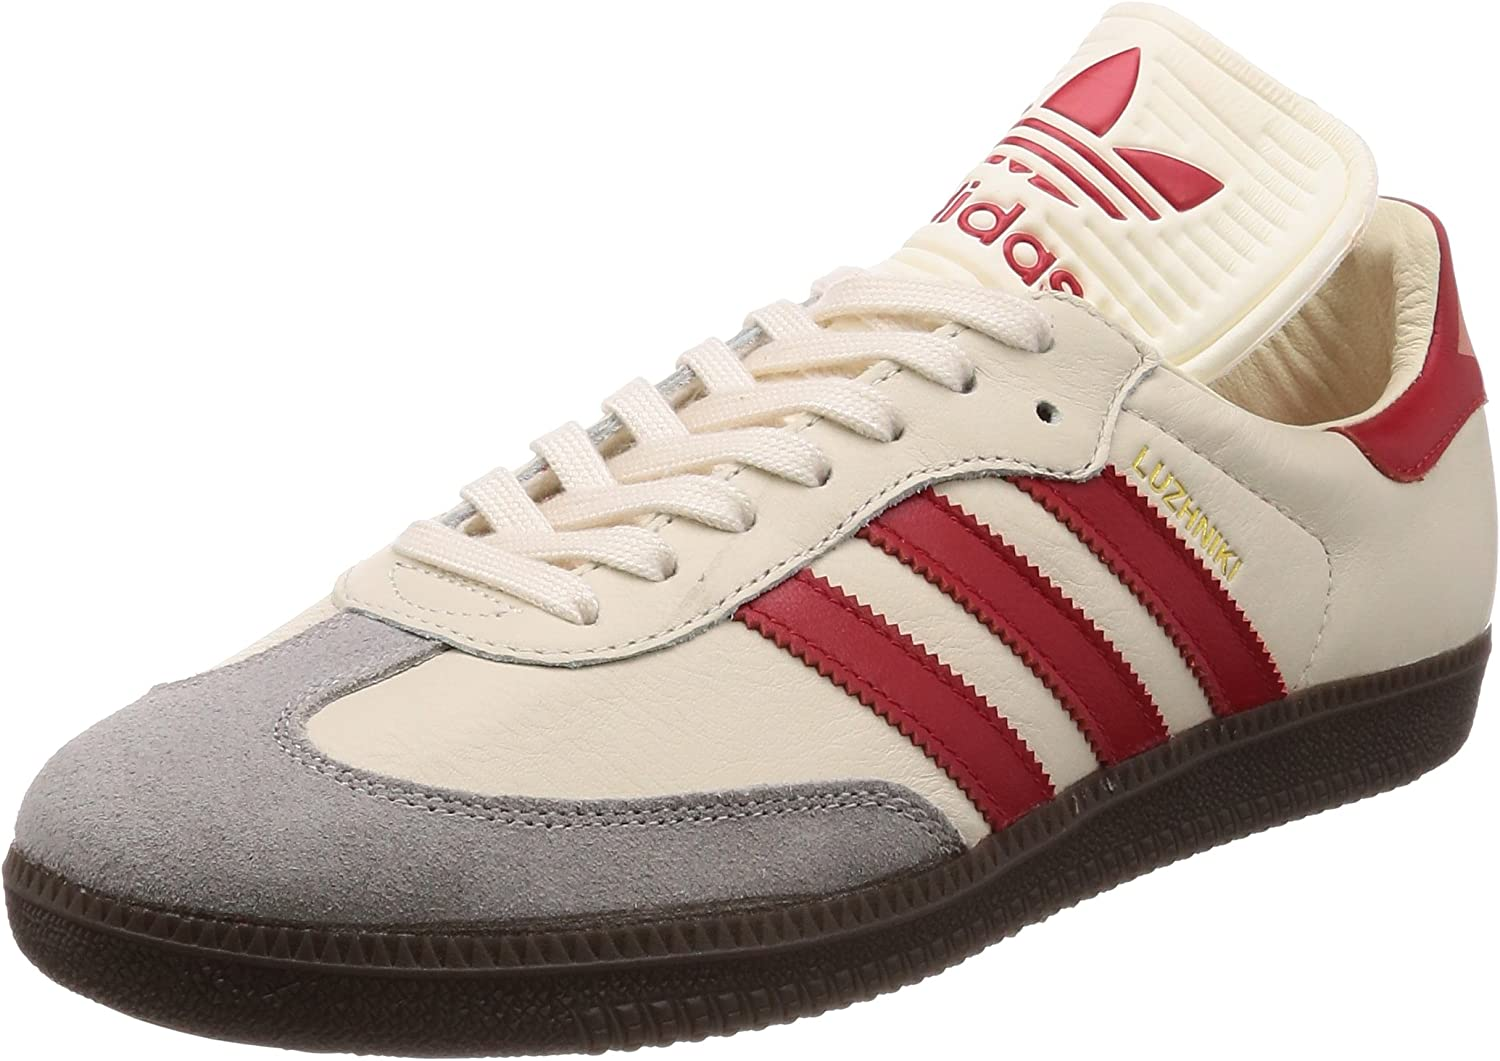 Adidas Men's Samba Classic Og Fitness shoes, Men, Multi-Coloured